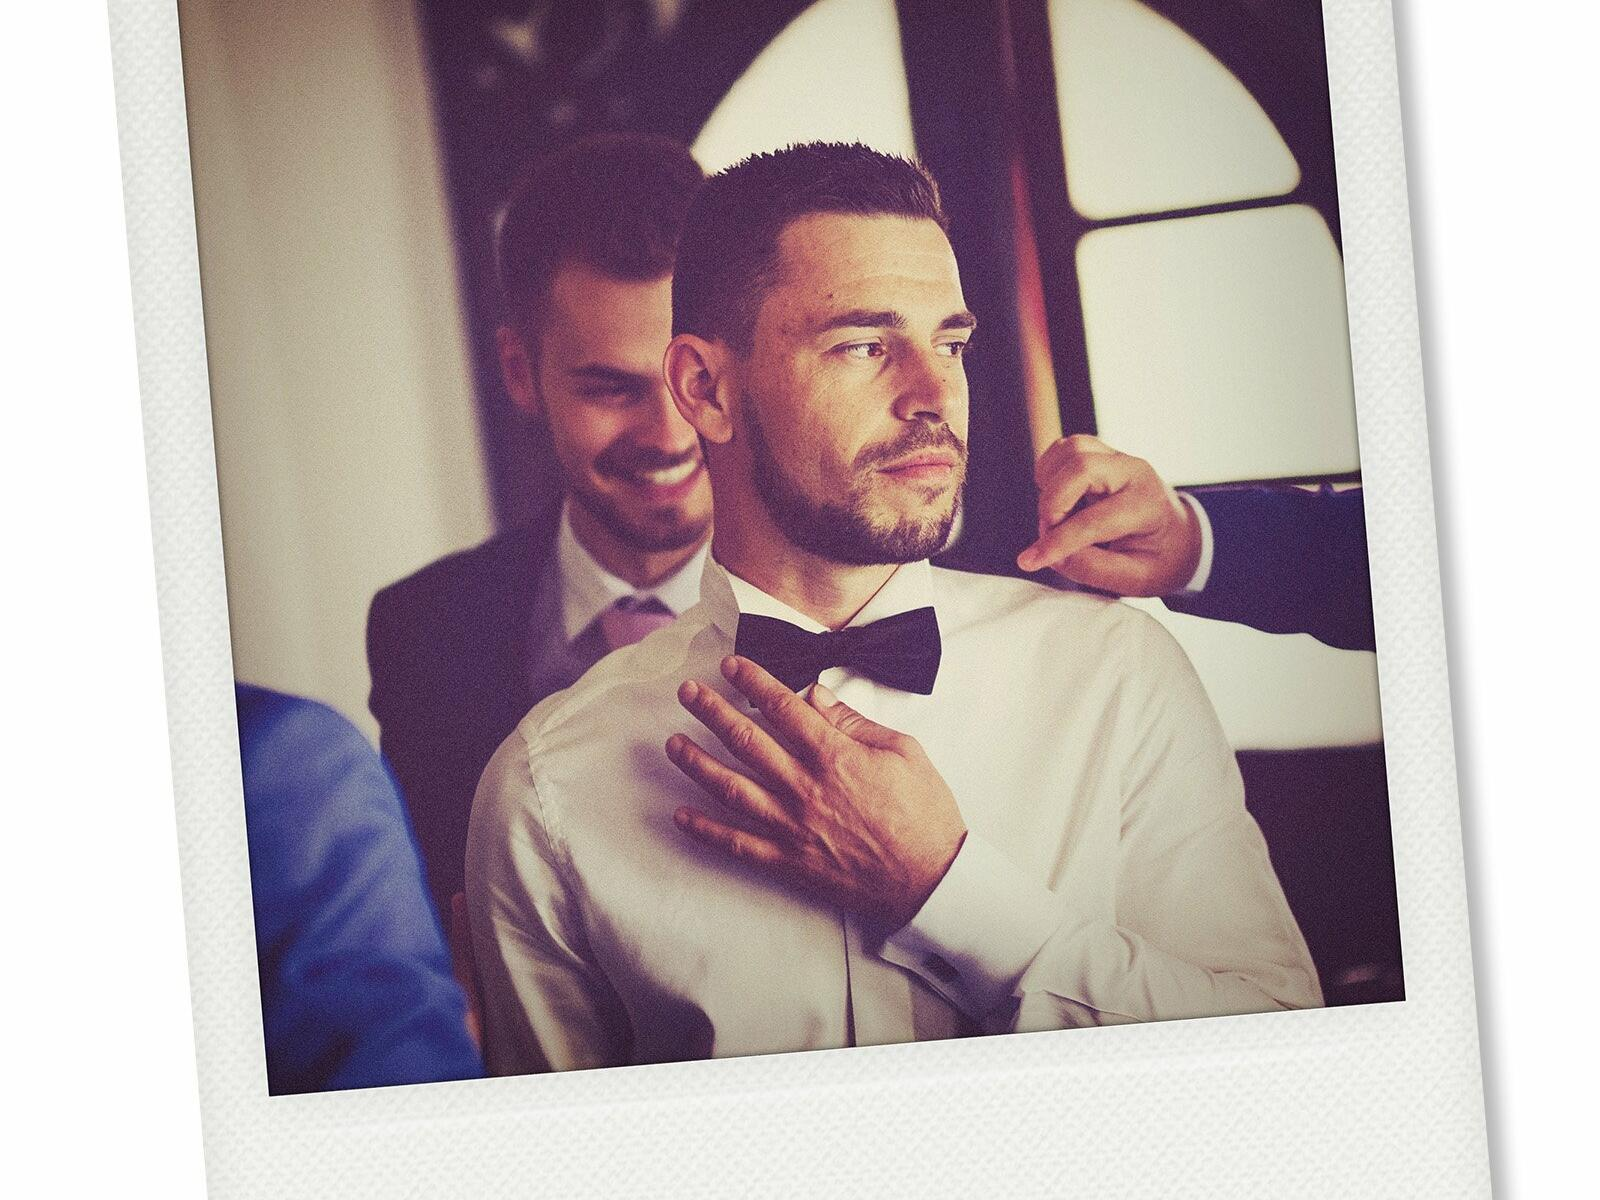 Photo Booth Image of groom getting ready at Dream Midtown NYC